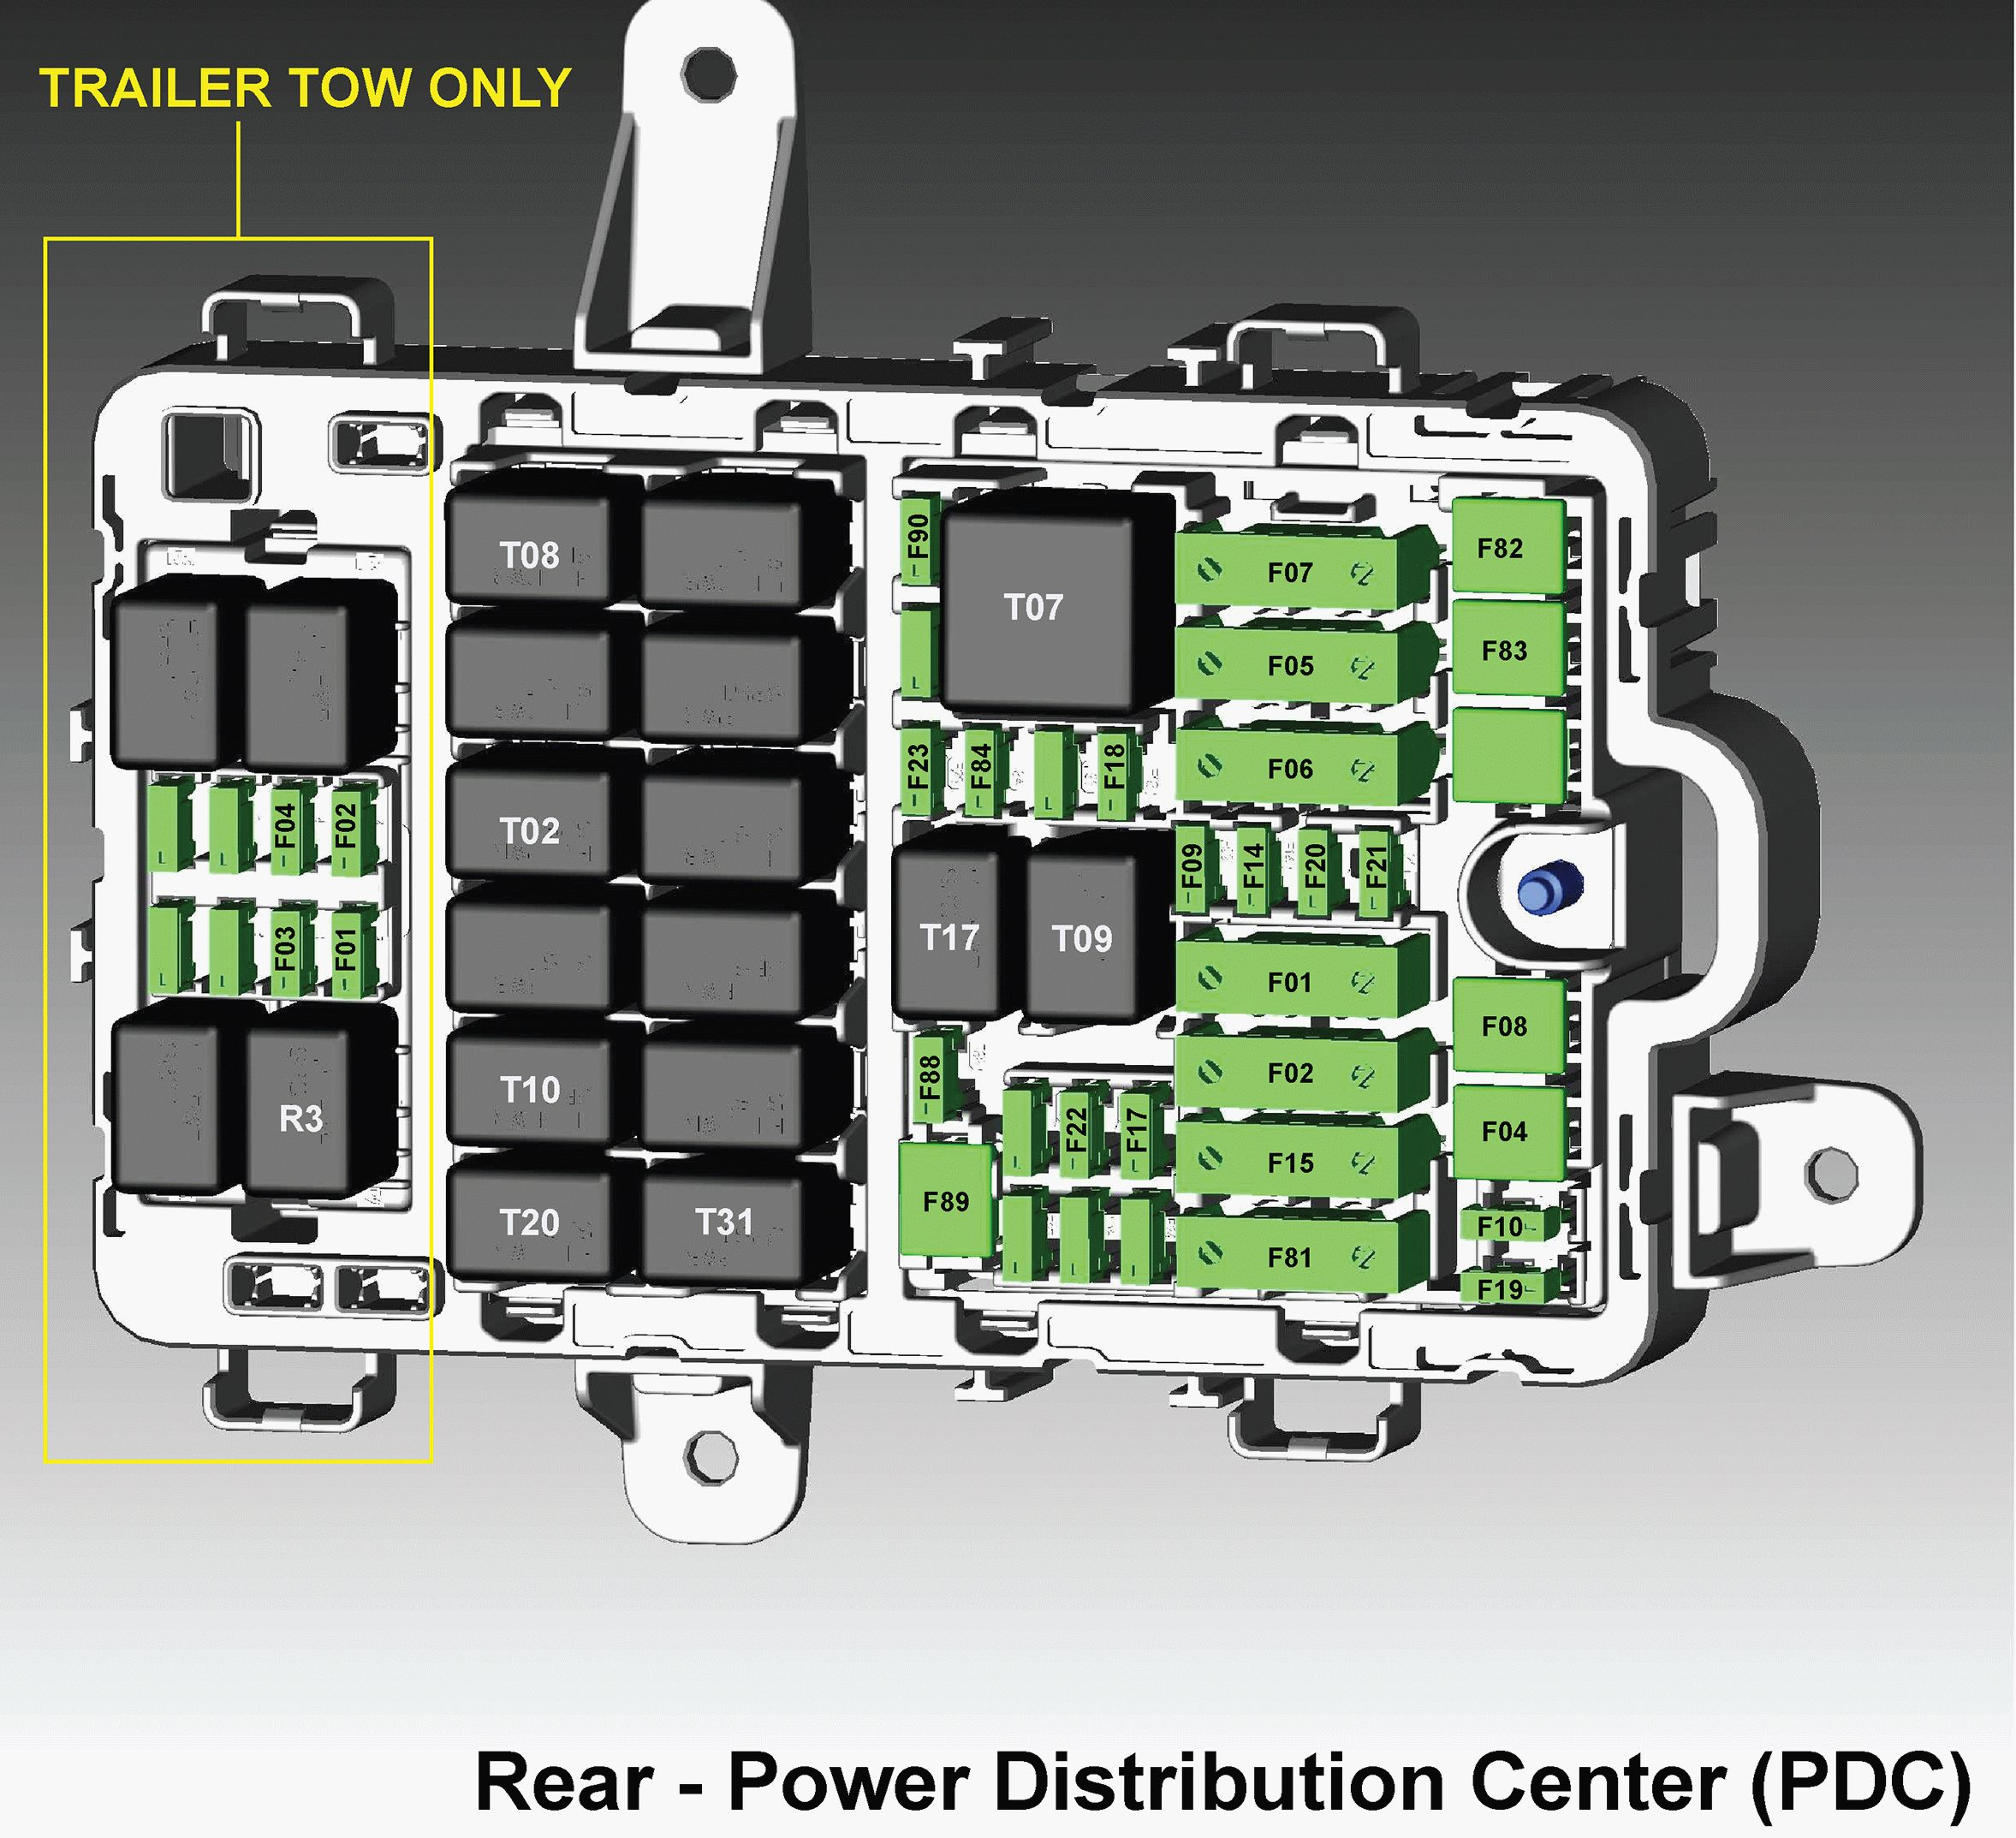 Alfa Romeo Giulia - fuse box diagram - rear power distribution center (PDC)